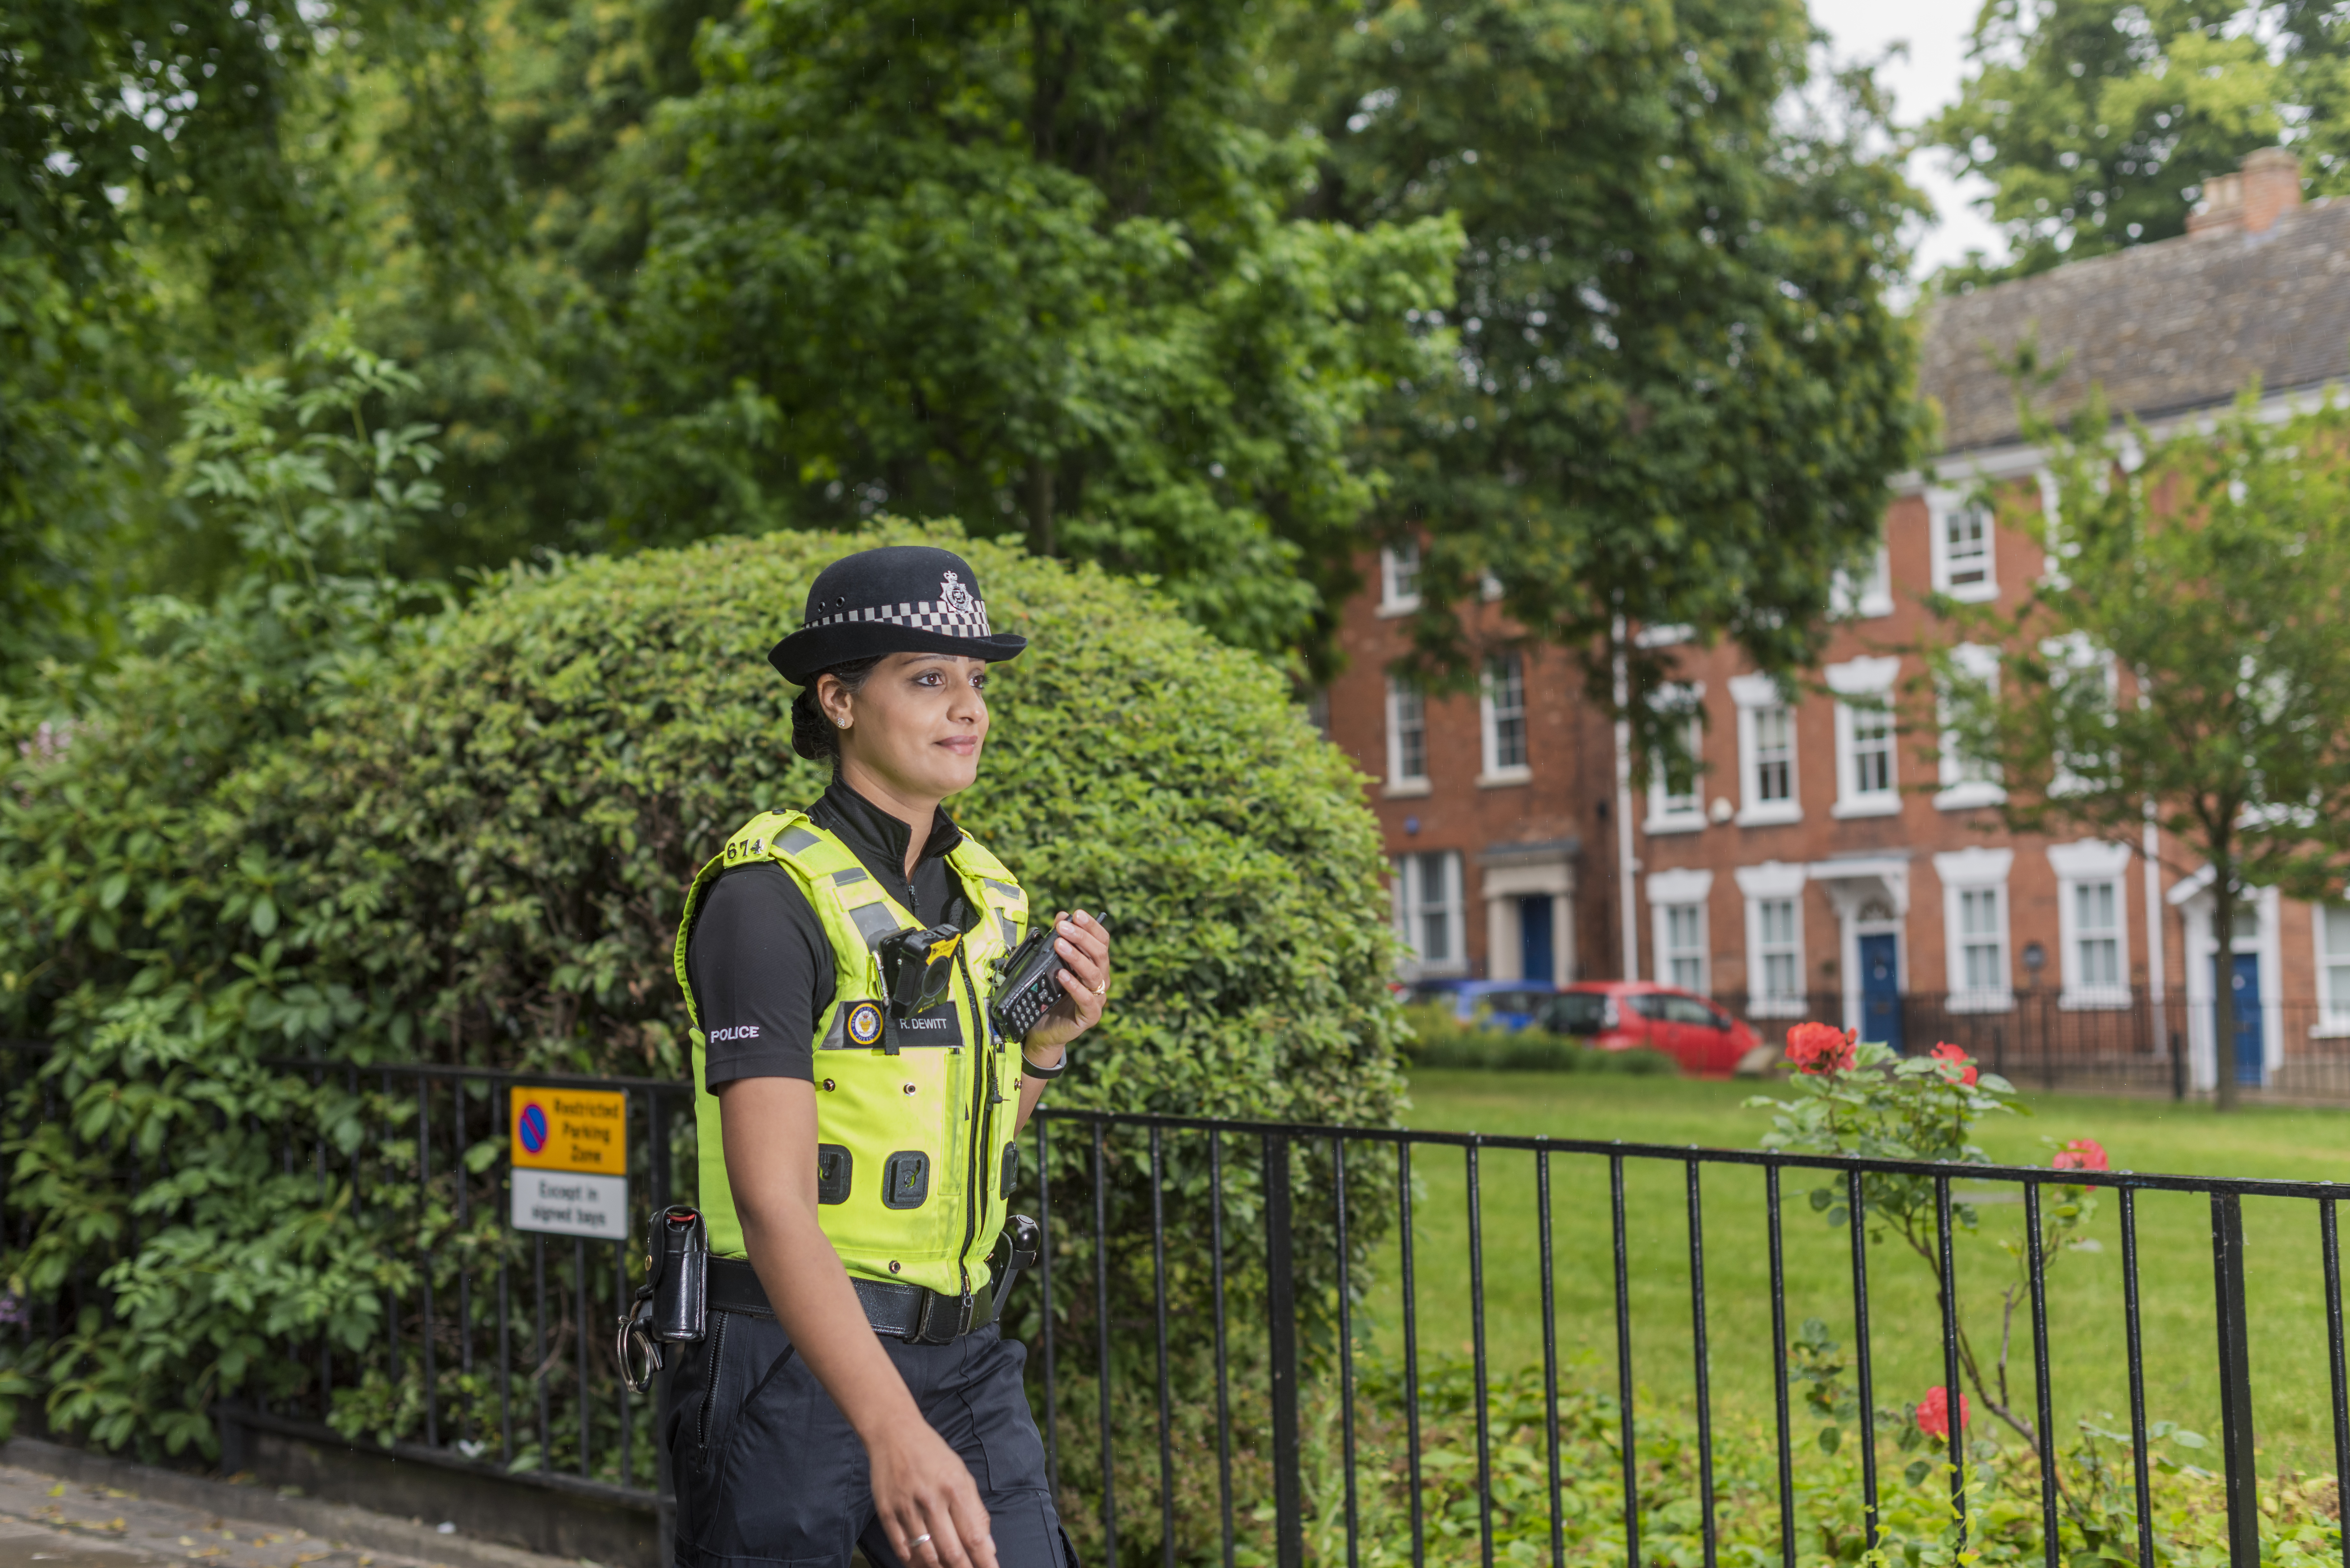 WMCA helps local people start a new career as police officers